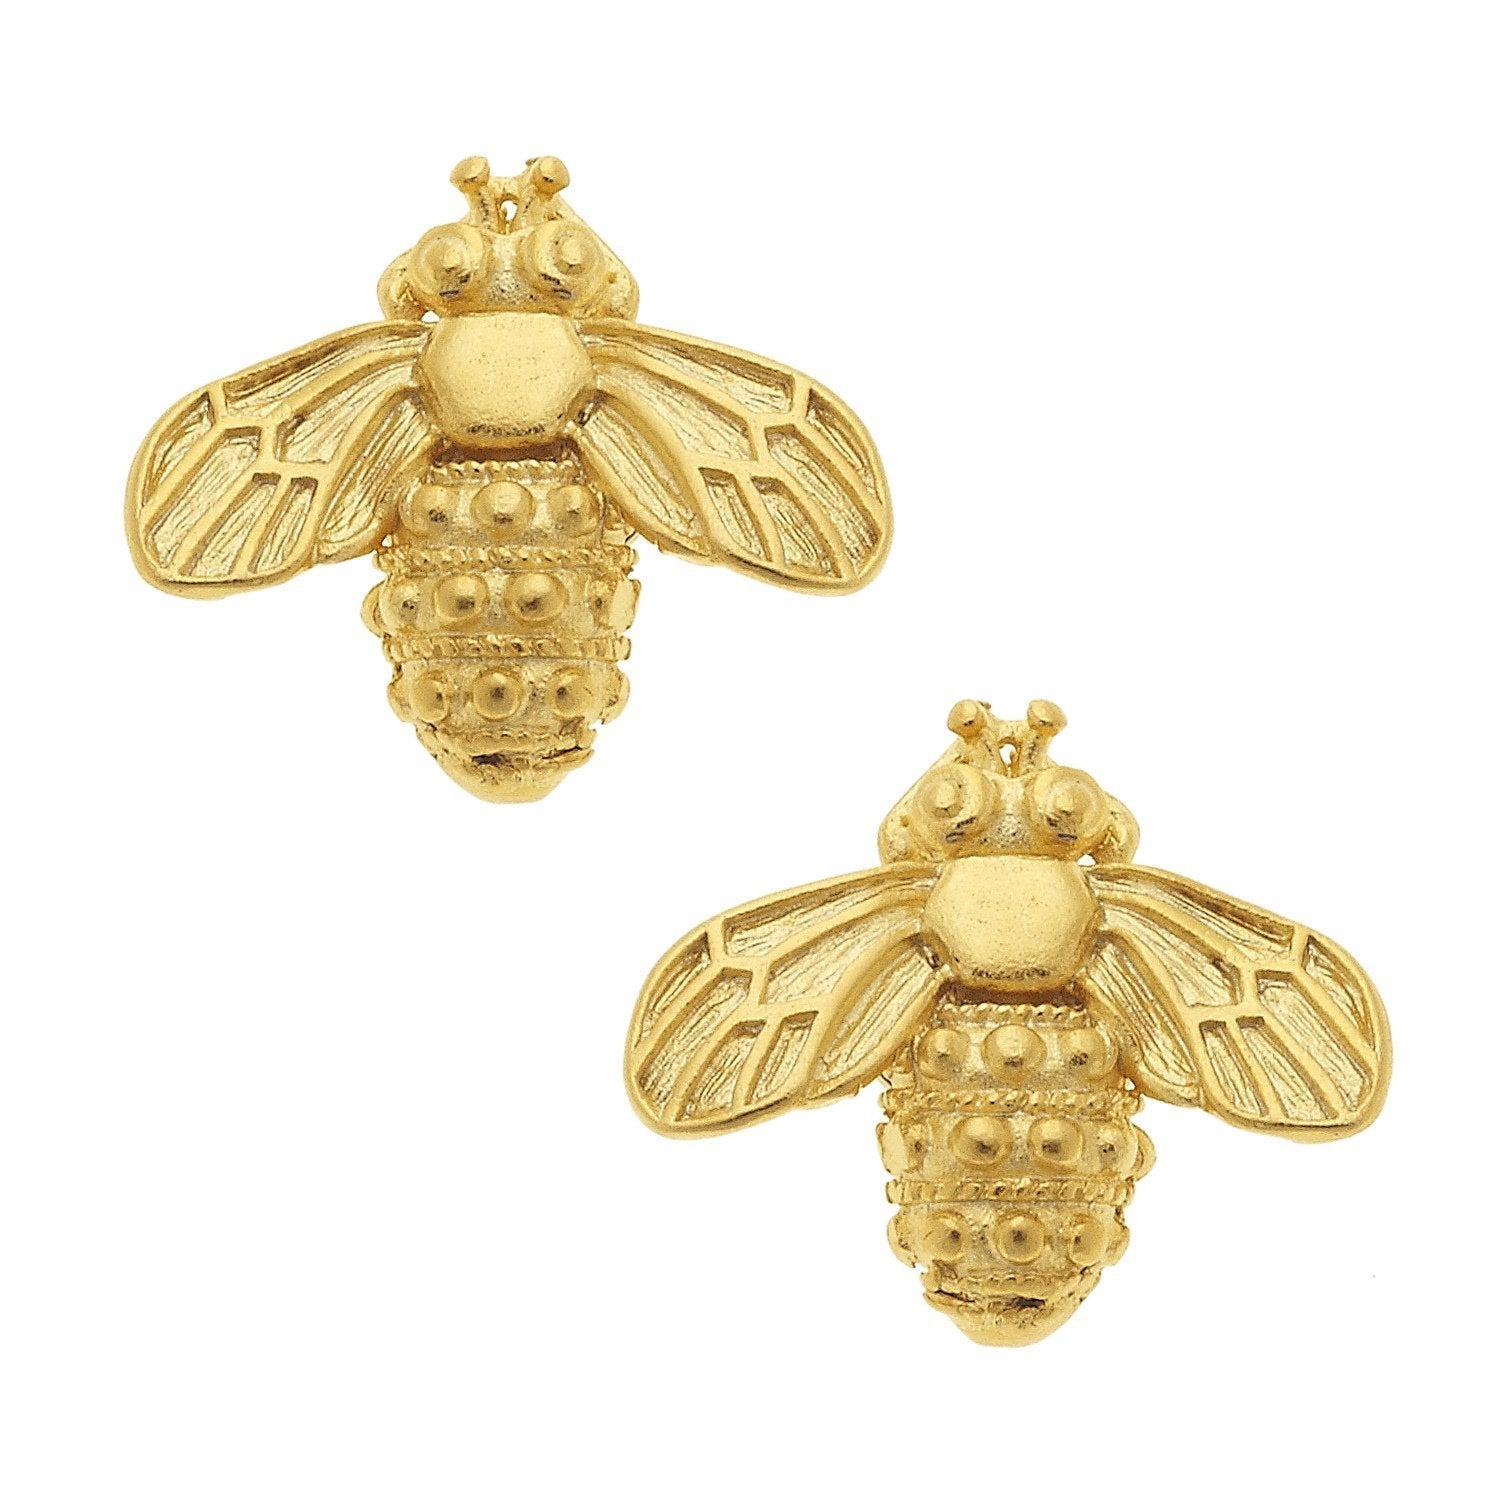 Susan Shaw Handcast Gold Bee Stud Earrings